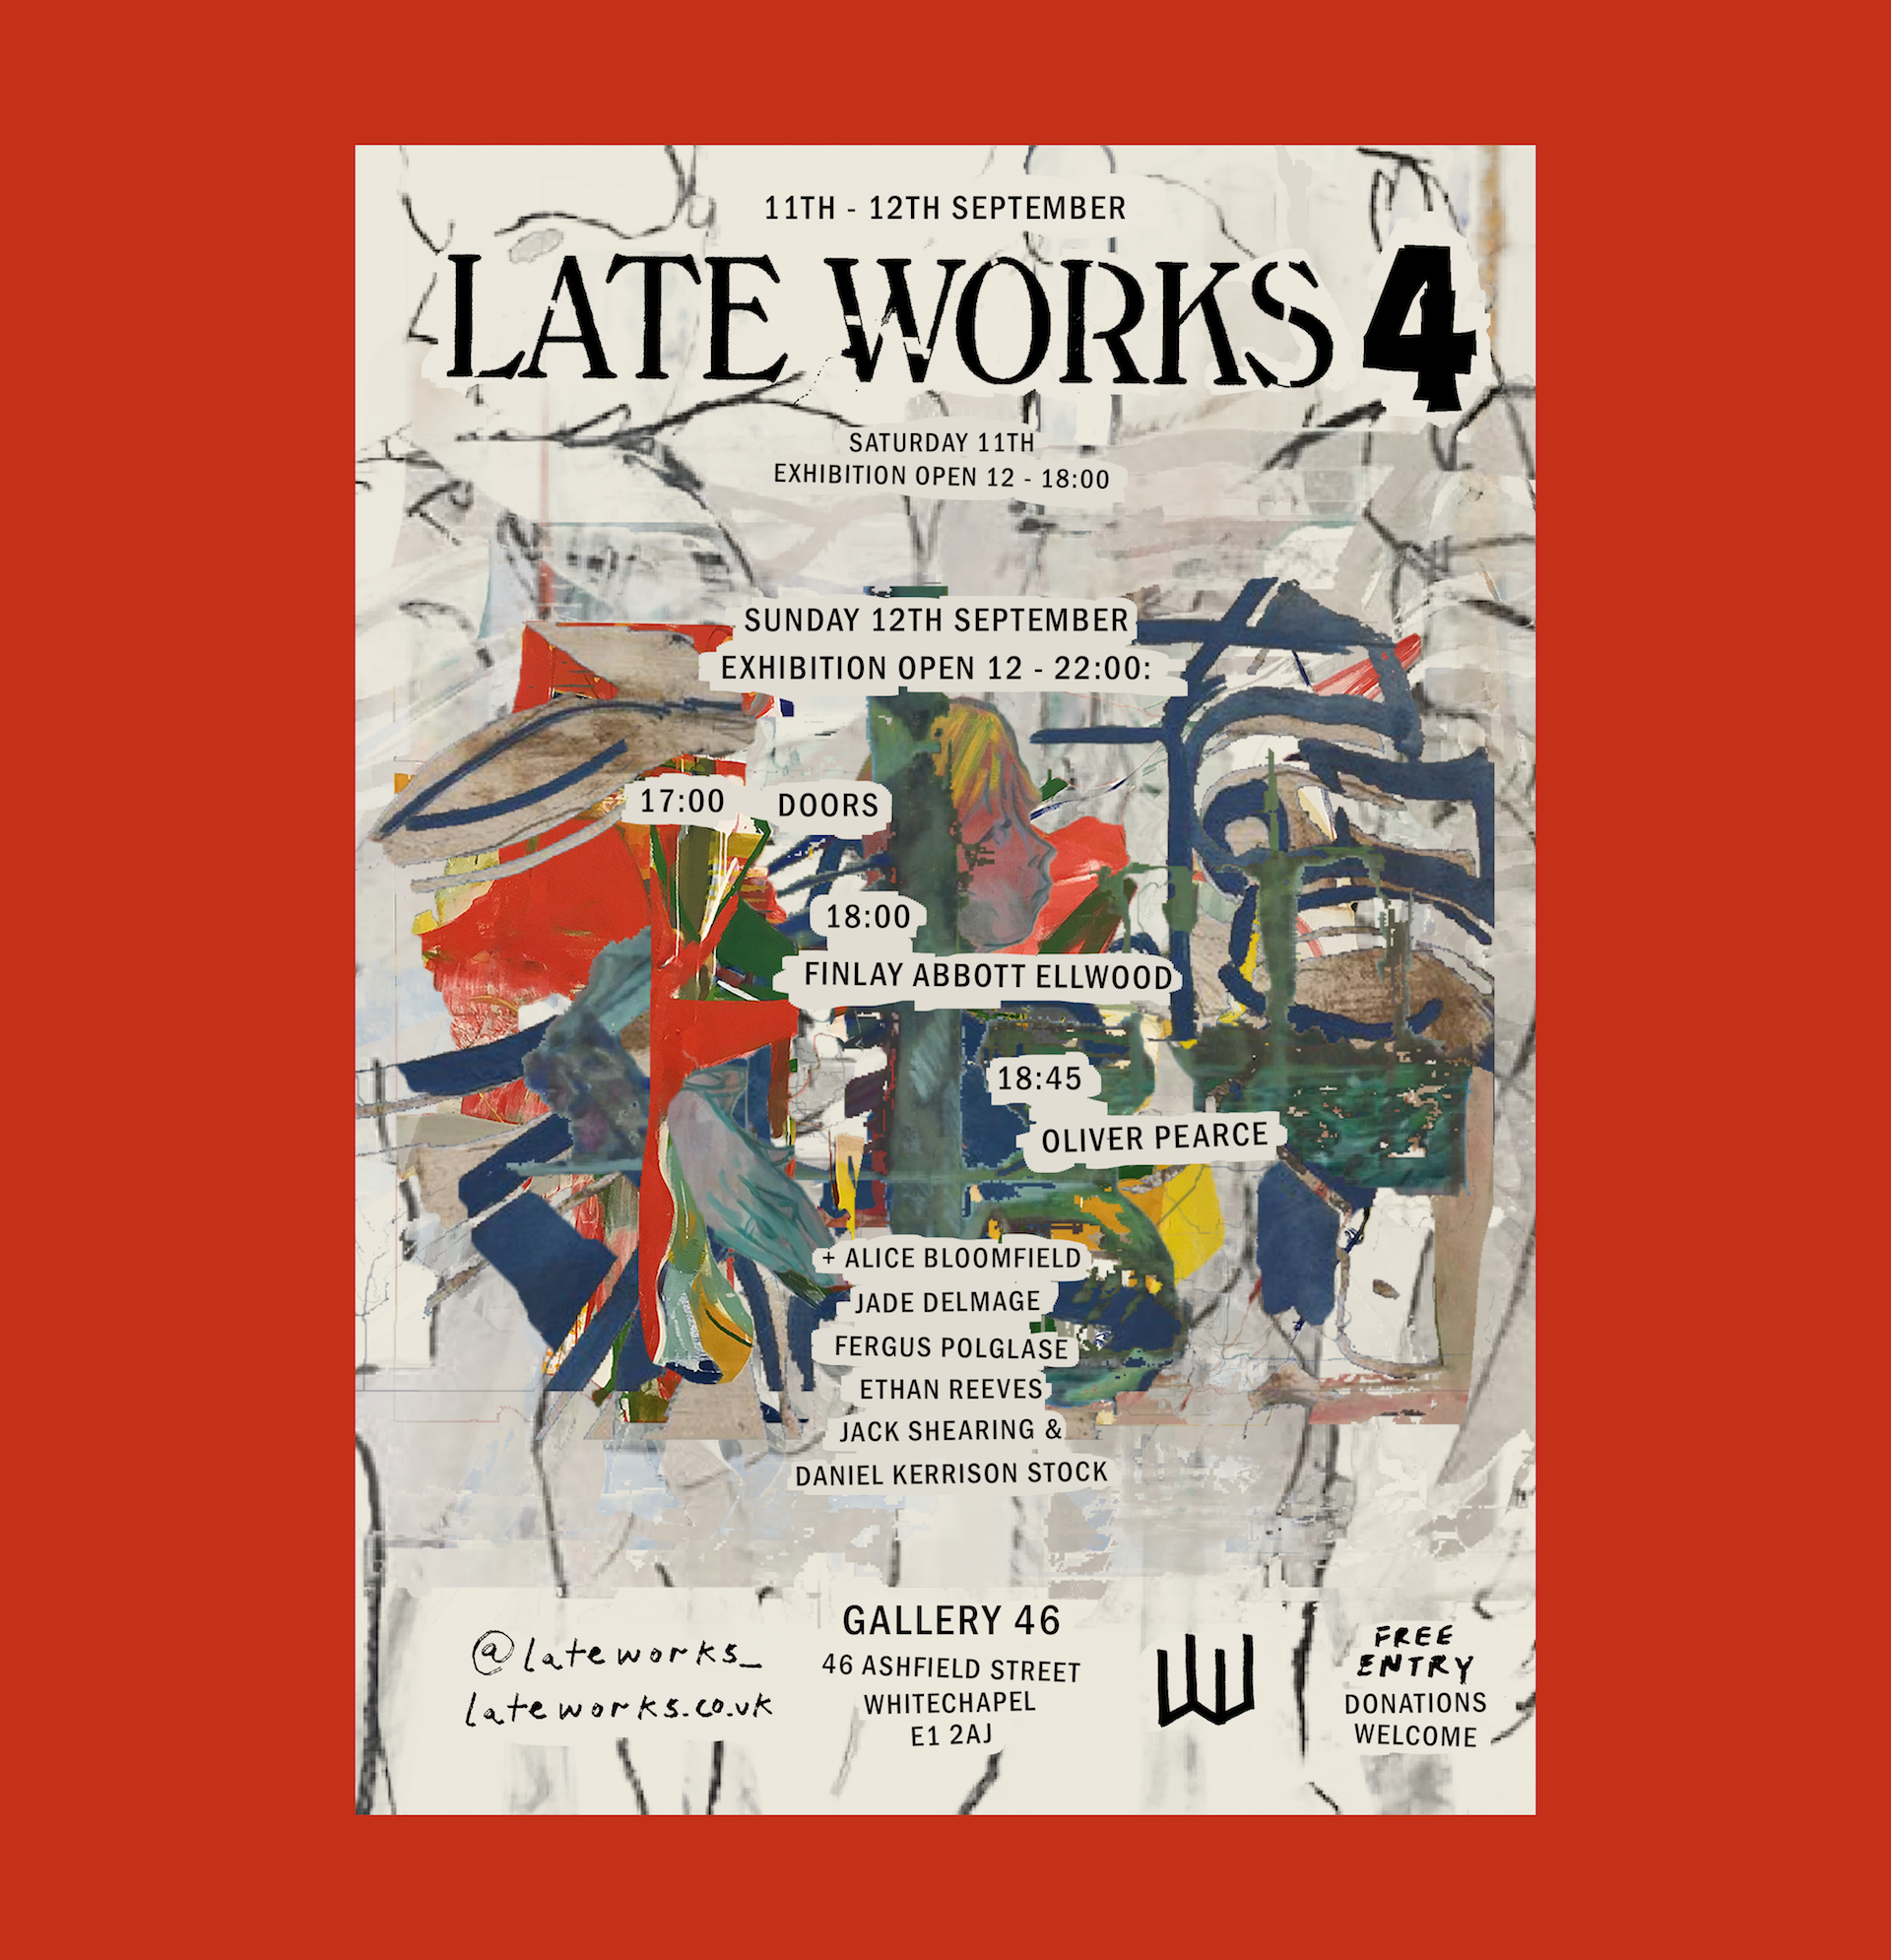 Poster for Late Works 4 on 11th-12th September 2021 at Gallery 46.